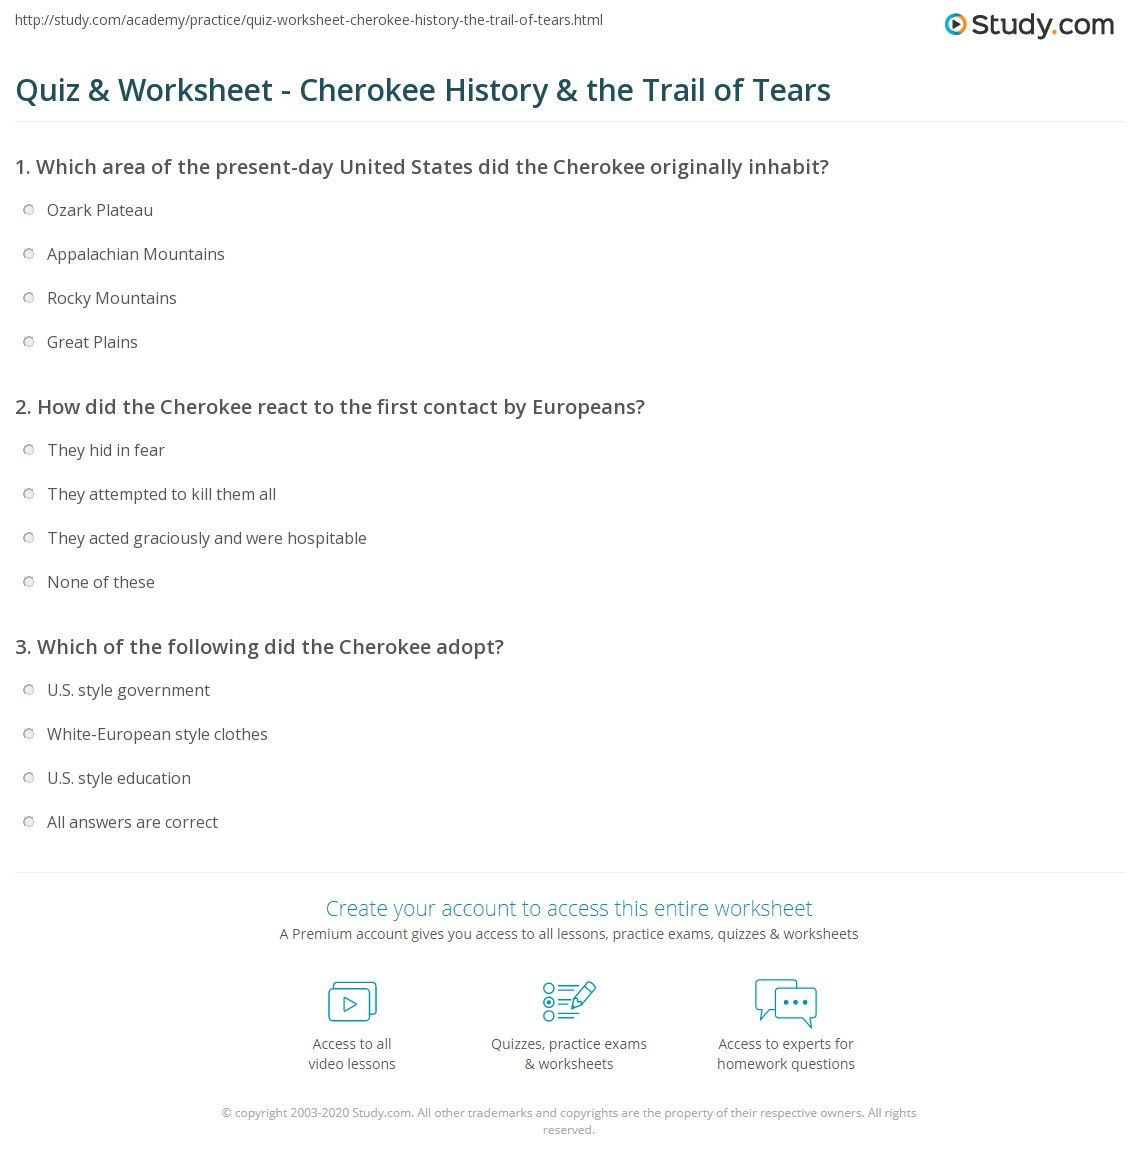 Weirdmailus  Surprising Quiz Amp Worksheet  Cherokee History Amp The Trail Of Tears  Studycom With Goodlooking Print The Cherokee Amp The Trail Of Tears History Timeline Amp Summary Worksheet With Endearing Balancing Chemical Reactions Worksheet  Also Commutative And Associative Properties Worksheets In Addition Multiplying With Decimals Worksheets And Common Noun Worksheets As Well As Instruments Of The Orchestra Worksheets Additionally Healthy Relationship Boundaries Worksheets From Studycom With Weirdmailus  Goodlooking Quiz Amp Worksheet  Cherokee History Amp The Trail Of Tears  Studycom With Endearing Print The Cherokee Amp The Trail Of Tears History Timeline Amp Summary Worksheet And Surprising Balancing Chemical Reactions Worksheet  Also Commutative And Associative Properties Worksheets In Addition Multiplying With Decimals Worksheets From Studycom